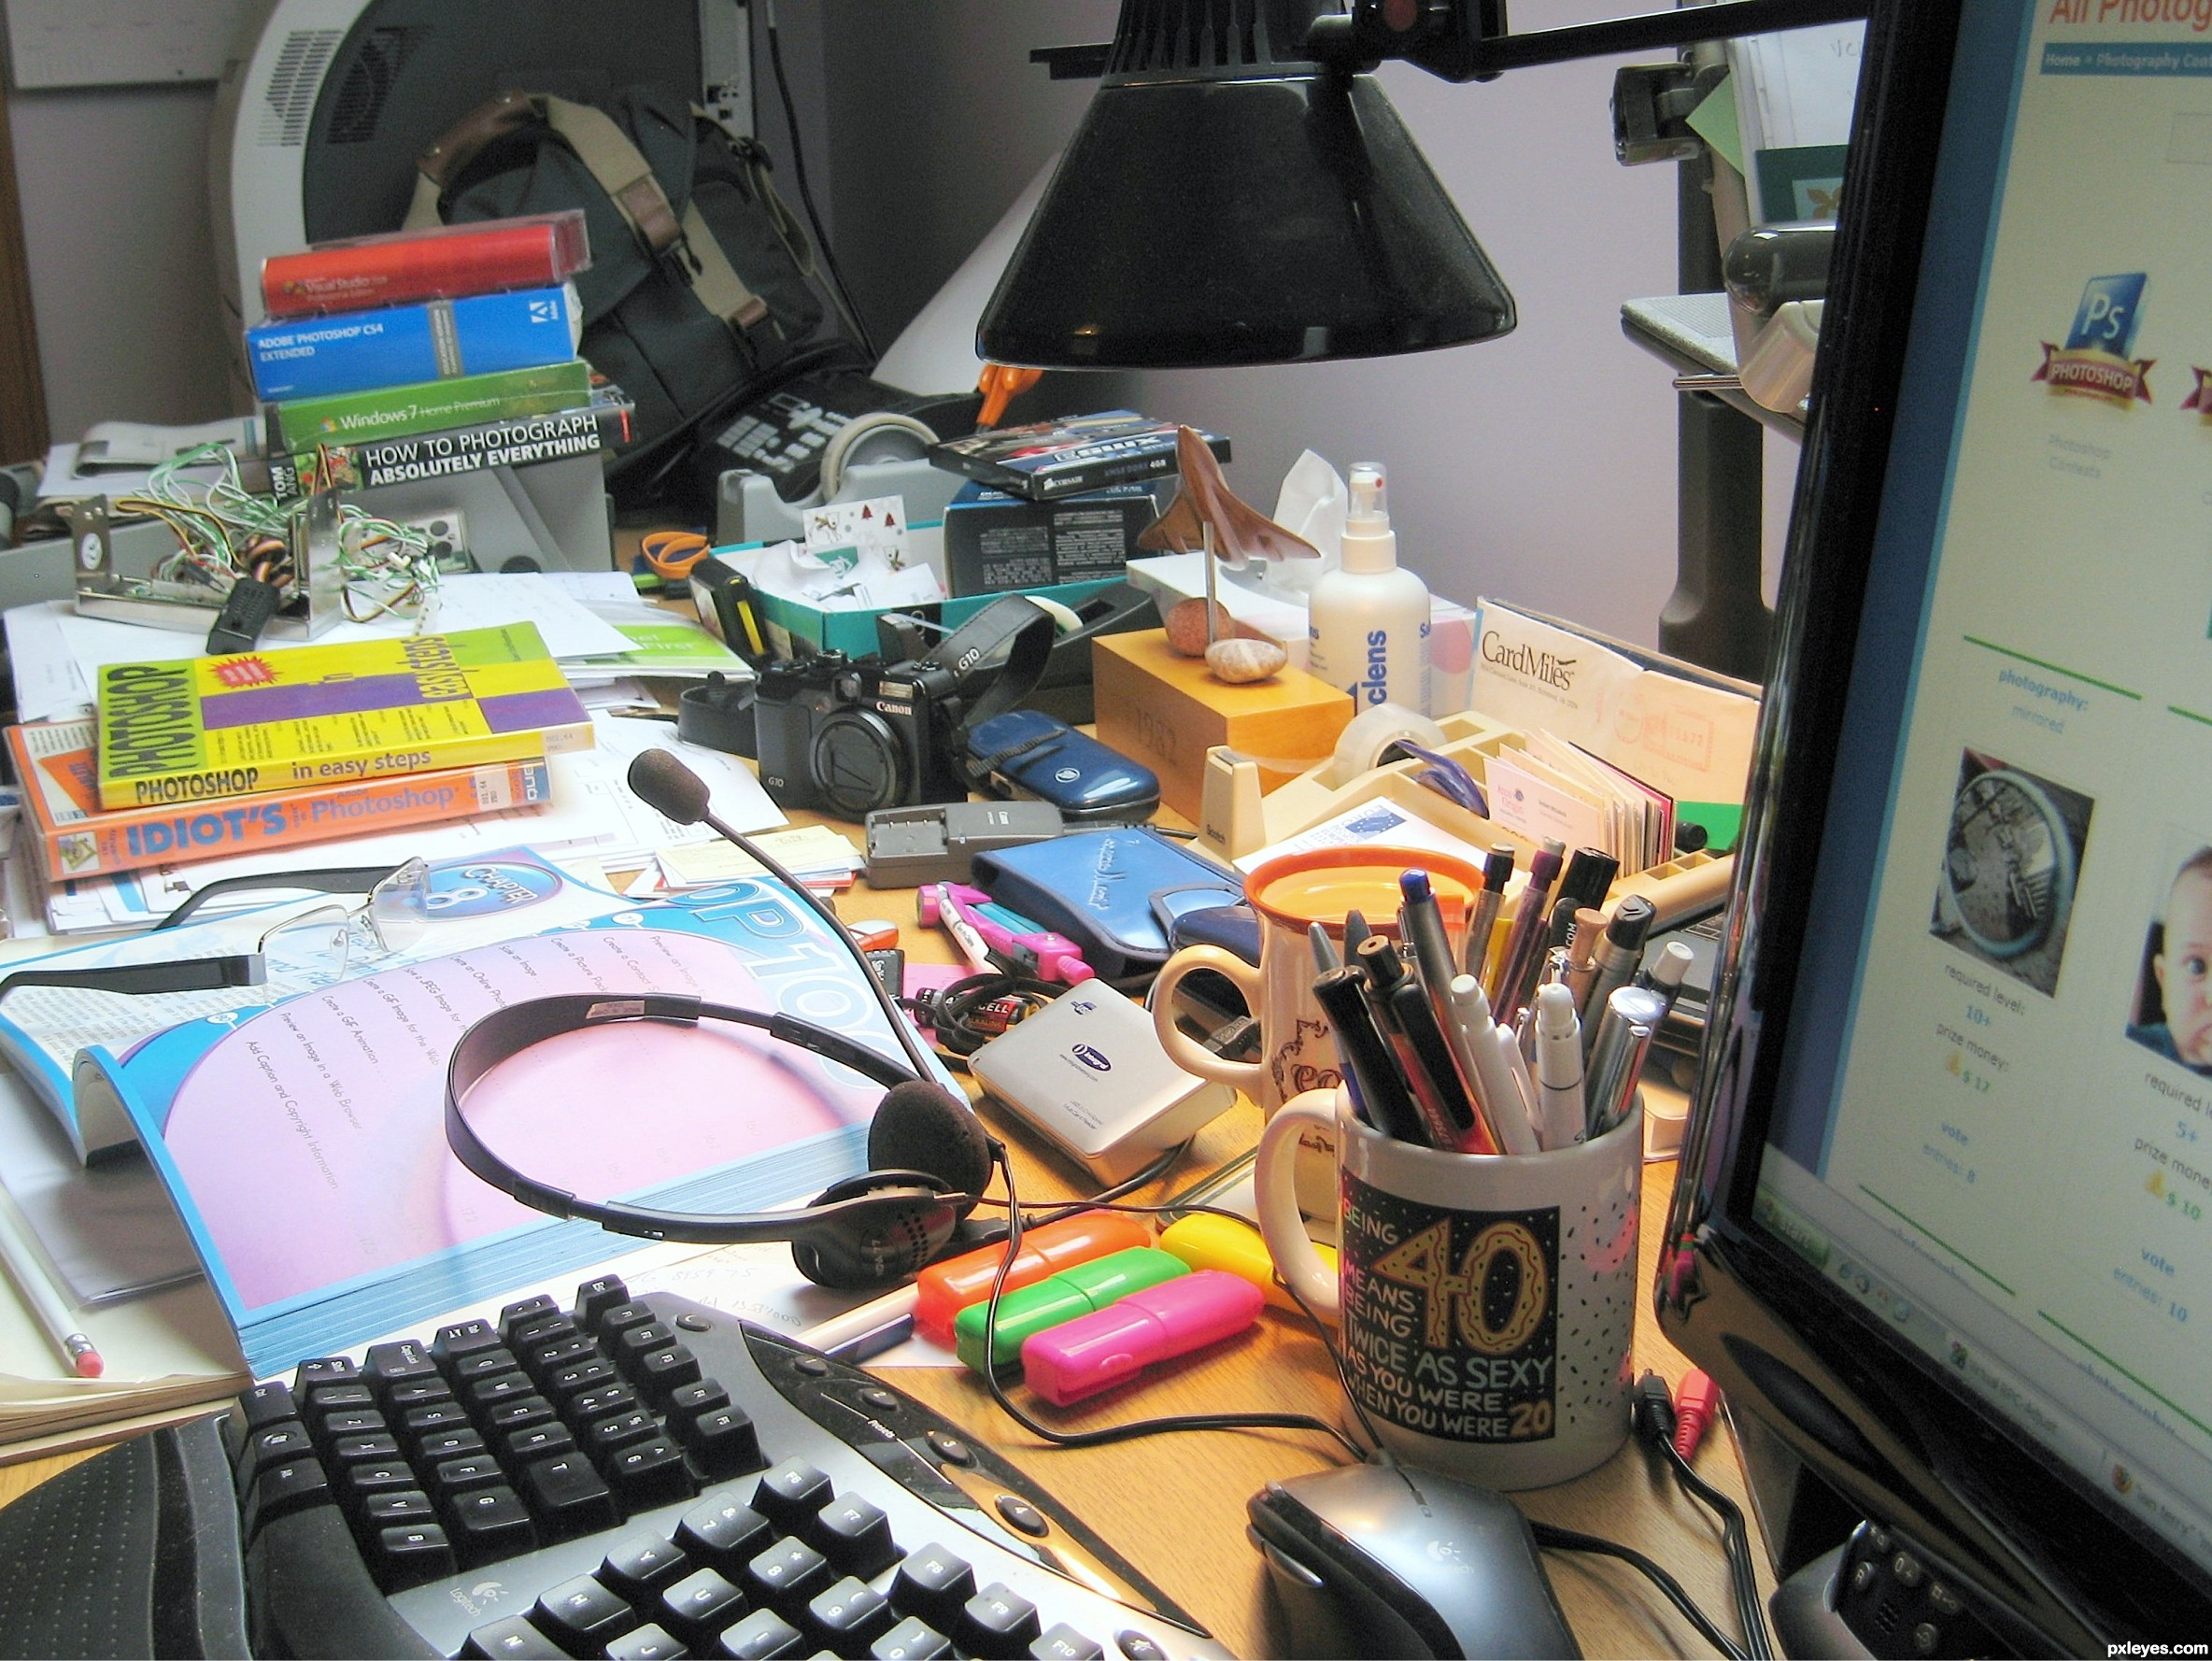 messy%20desks 4c4c471bdacf7 hires - 7 Ways to Fight Clutter